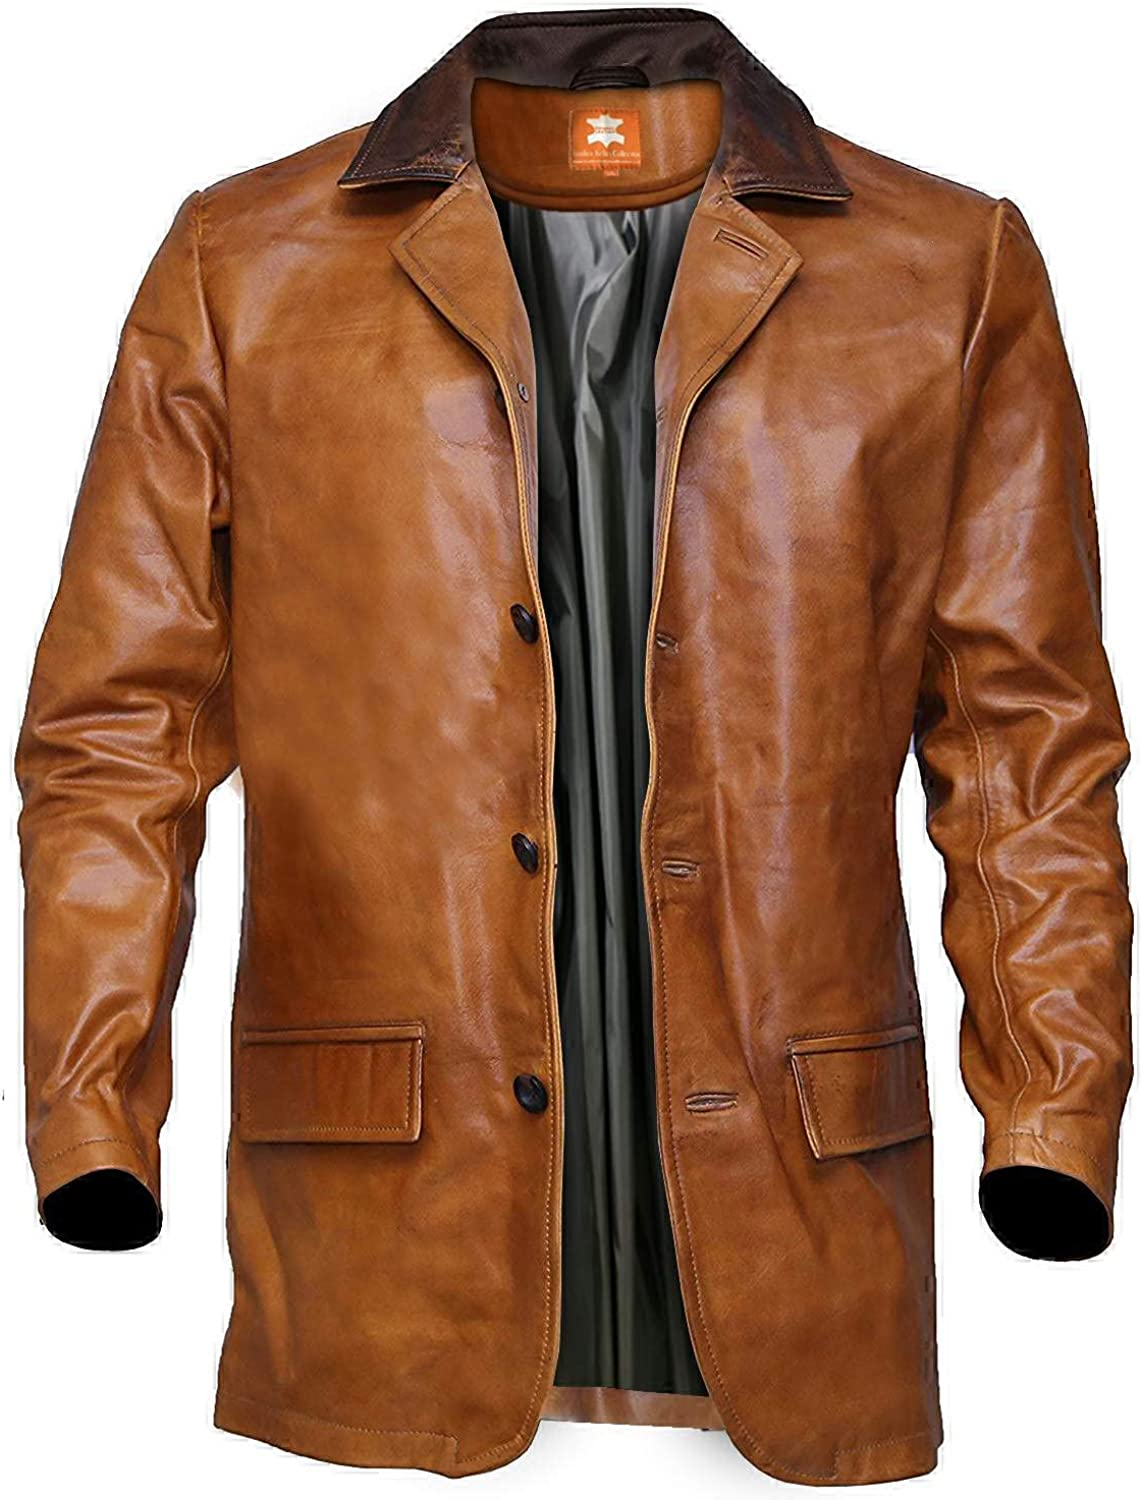 Men's Brown Leather Jacket, Distressed Leather Trench Coat, Hip-height Long Coat, Three Quarter Long Coat